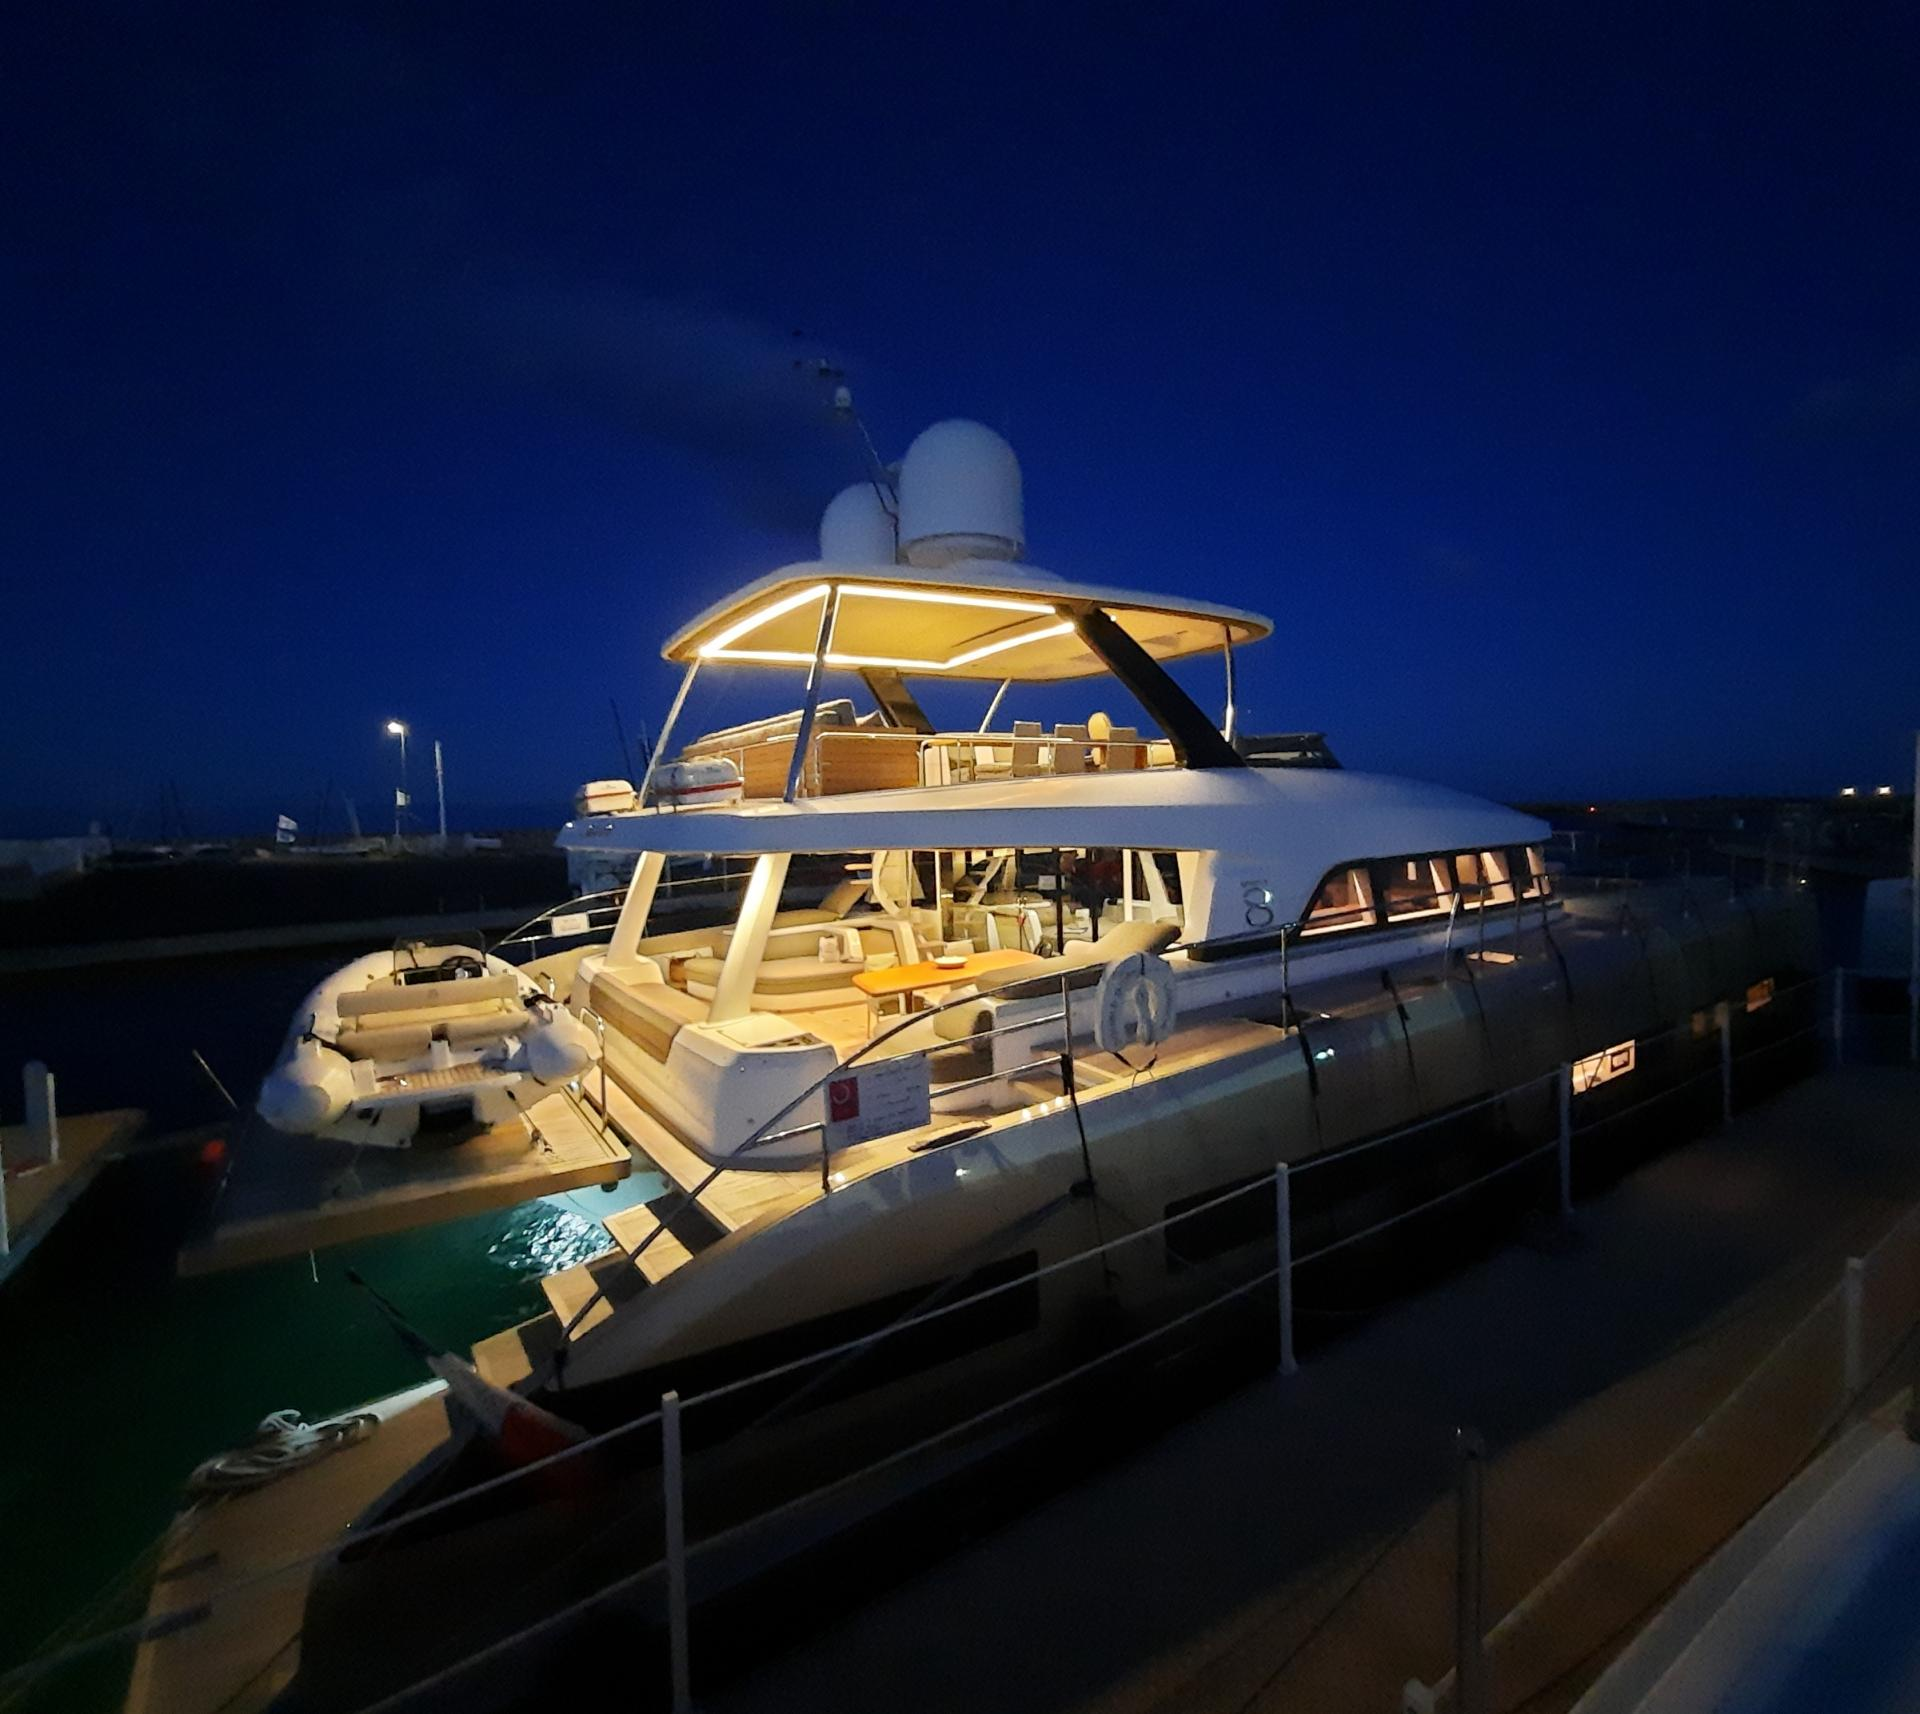 Lagoon seventy 8 by night